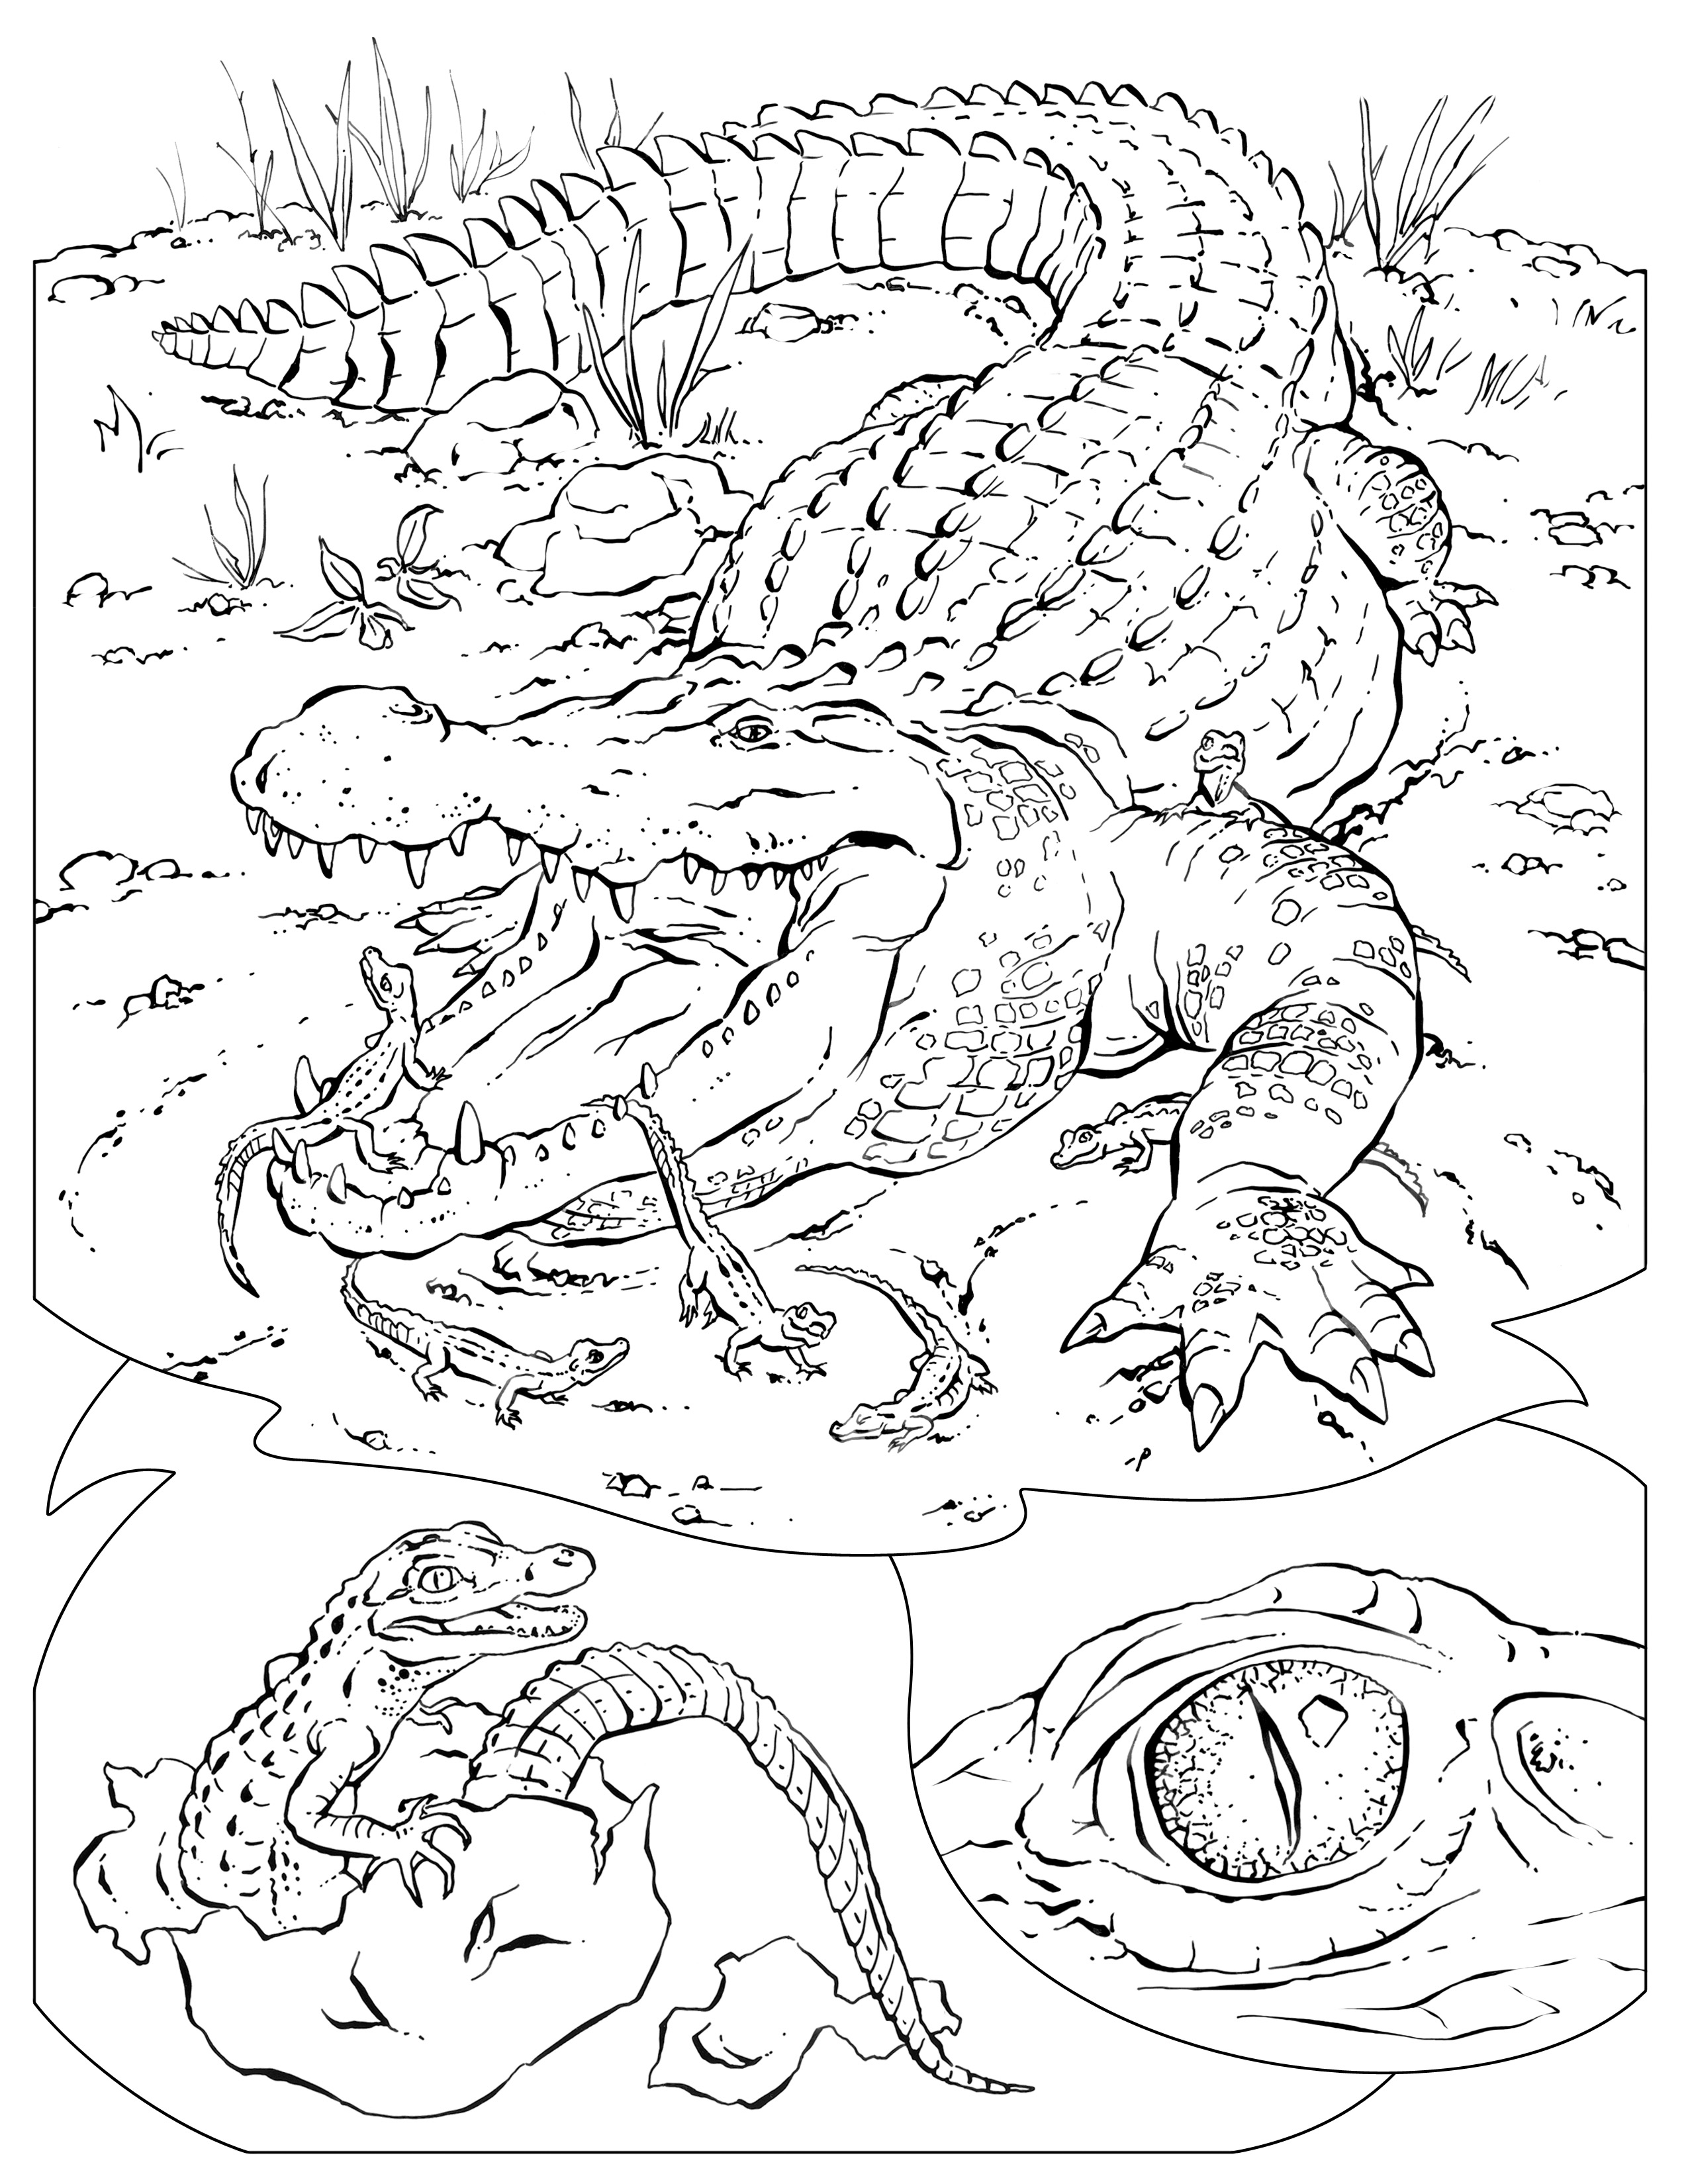 Wildlife coloring #11, Download drawings